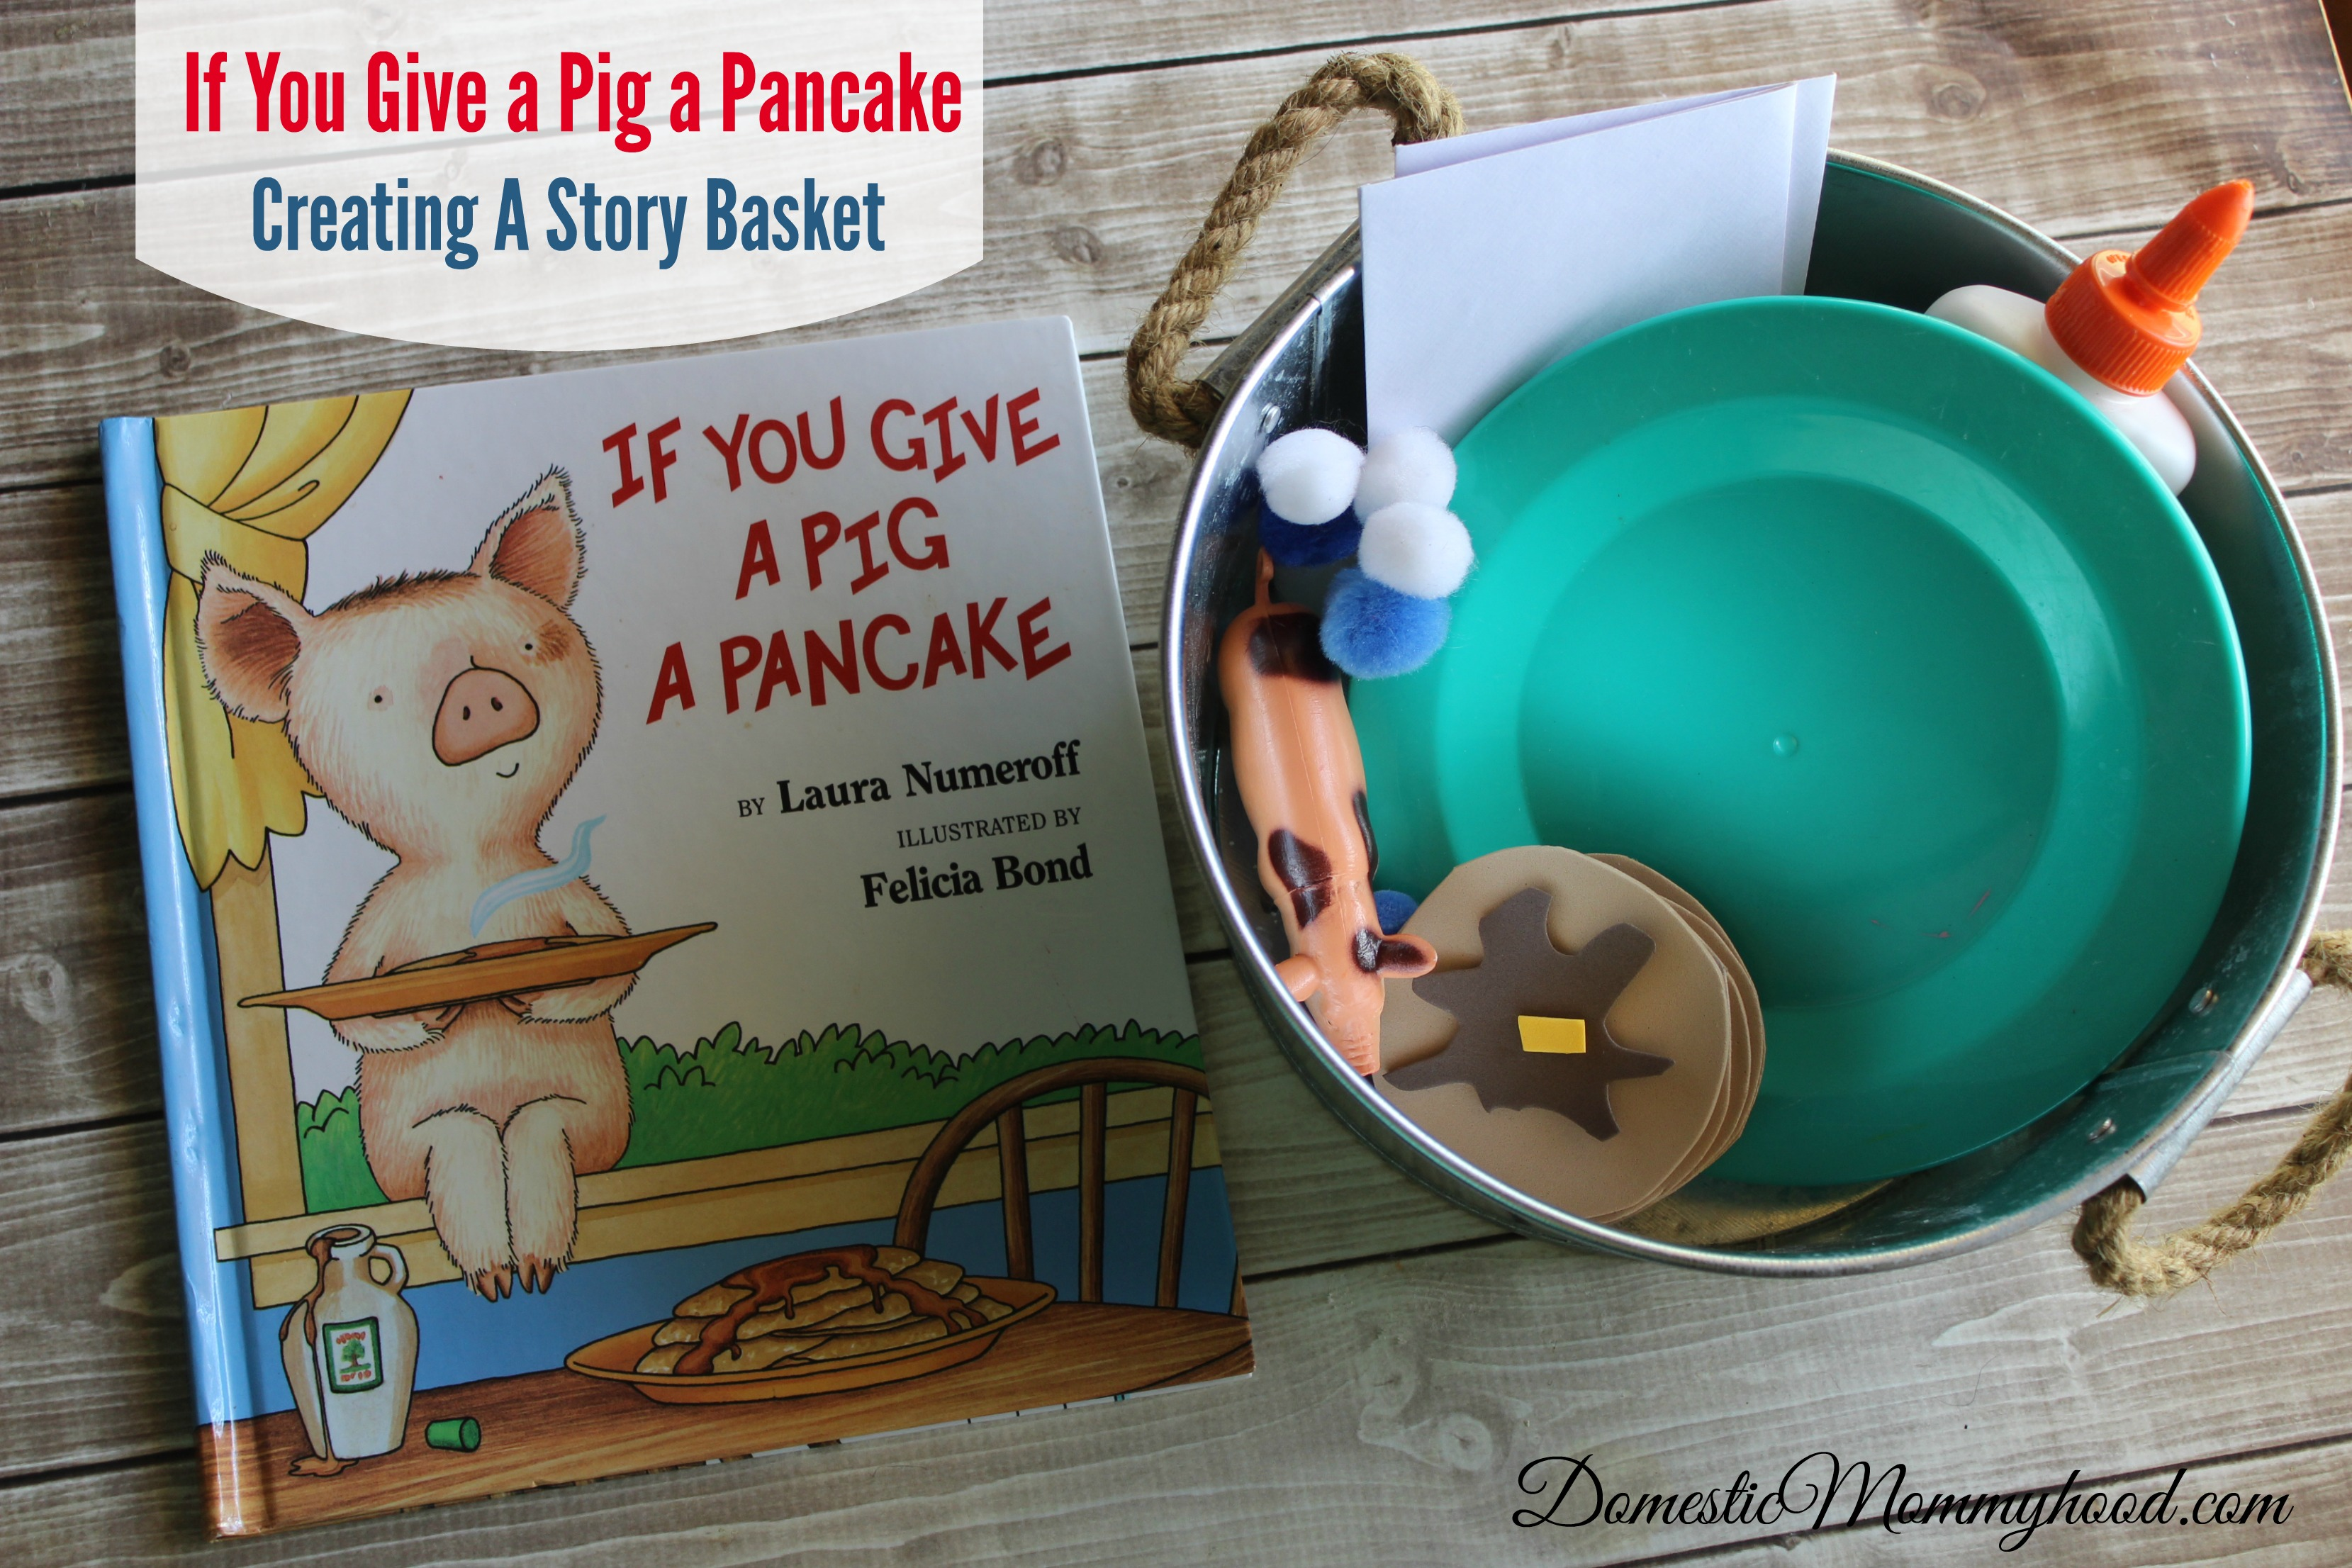 If You Give a Pig a Pancake Math and Literacy Pre-K Kids Activity & Story Basket Creating A Story Basket.jpg